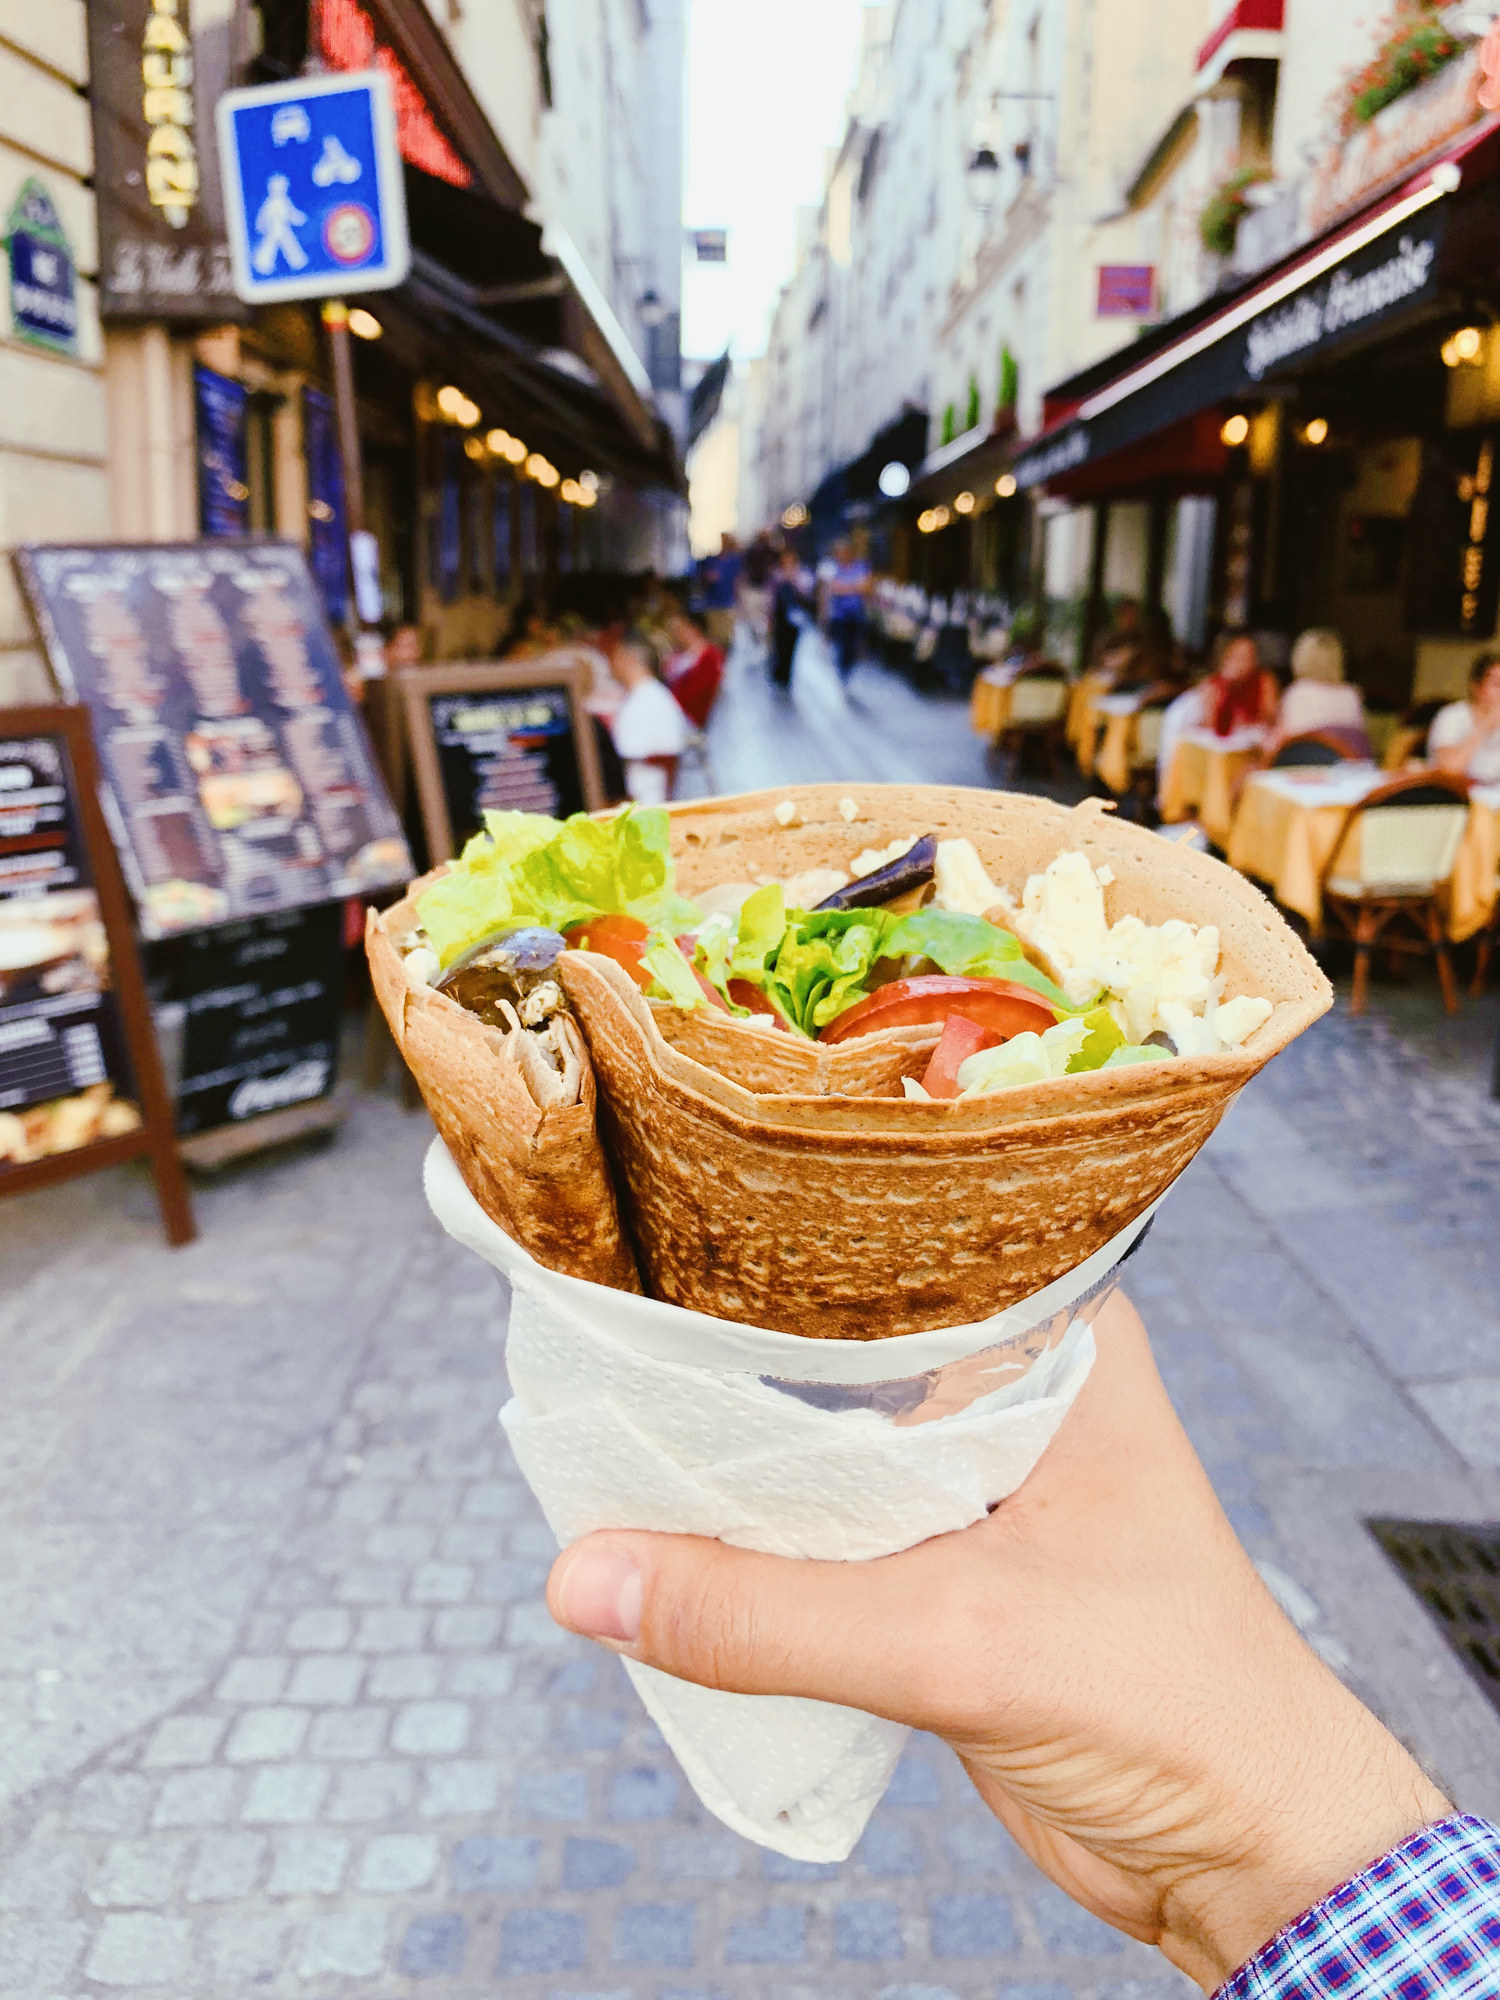 A crepe on the street.